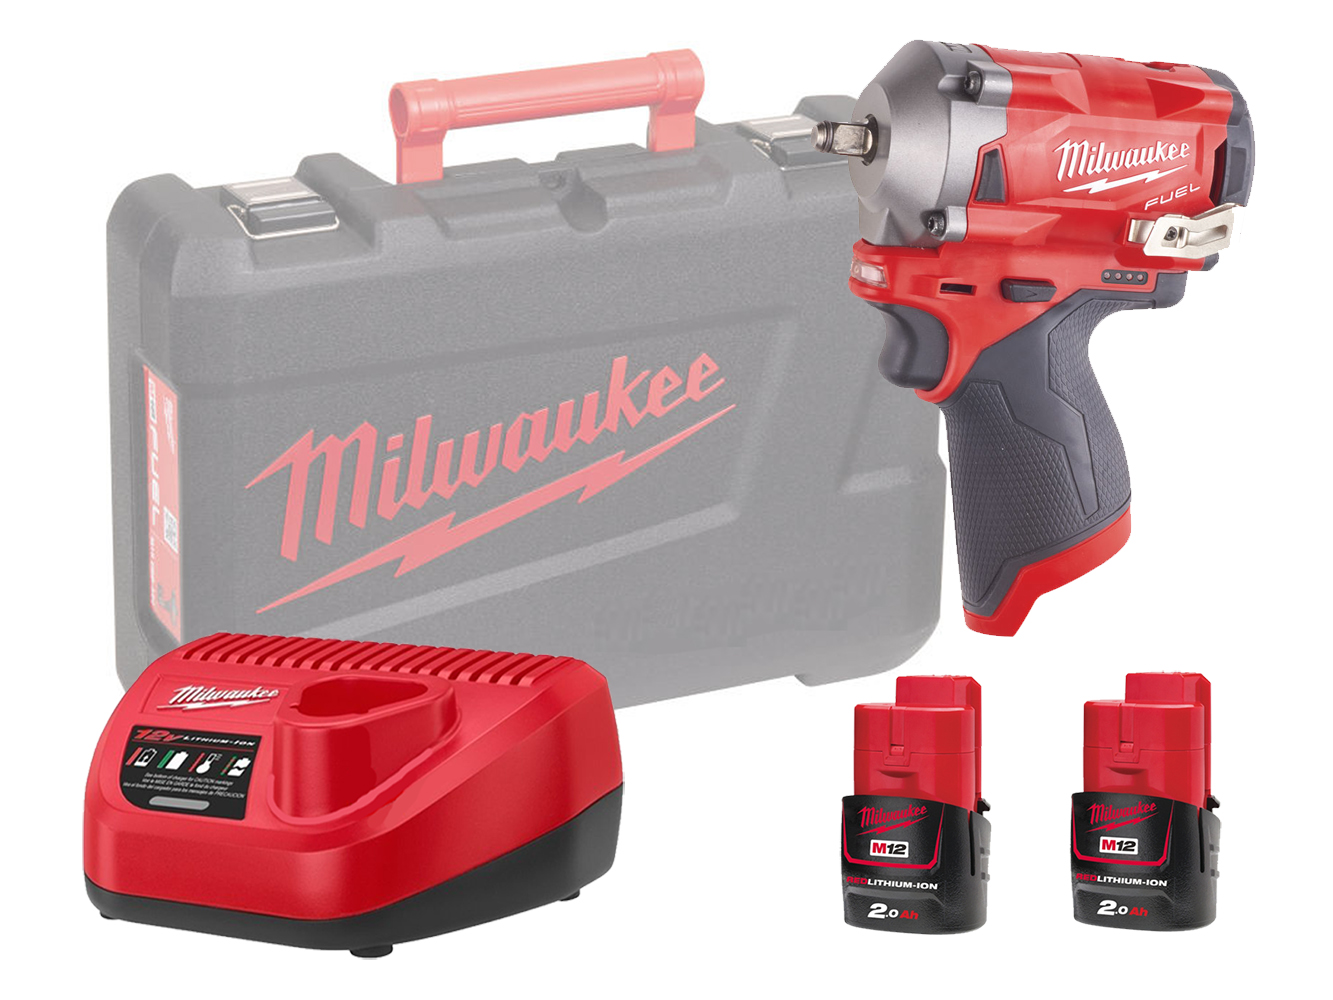 MILWAUKEE 12V FUEL COMPACT IMPACT WRENCH 3/8